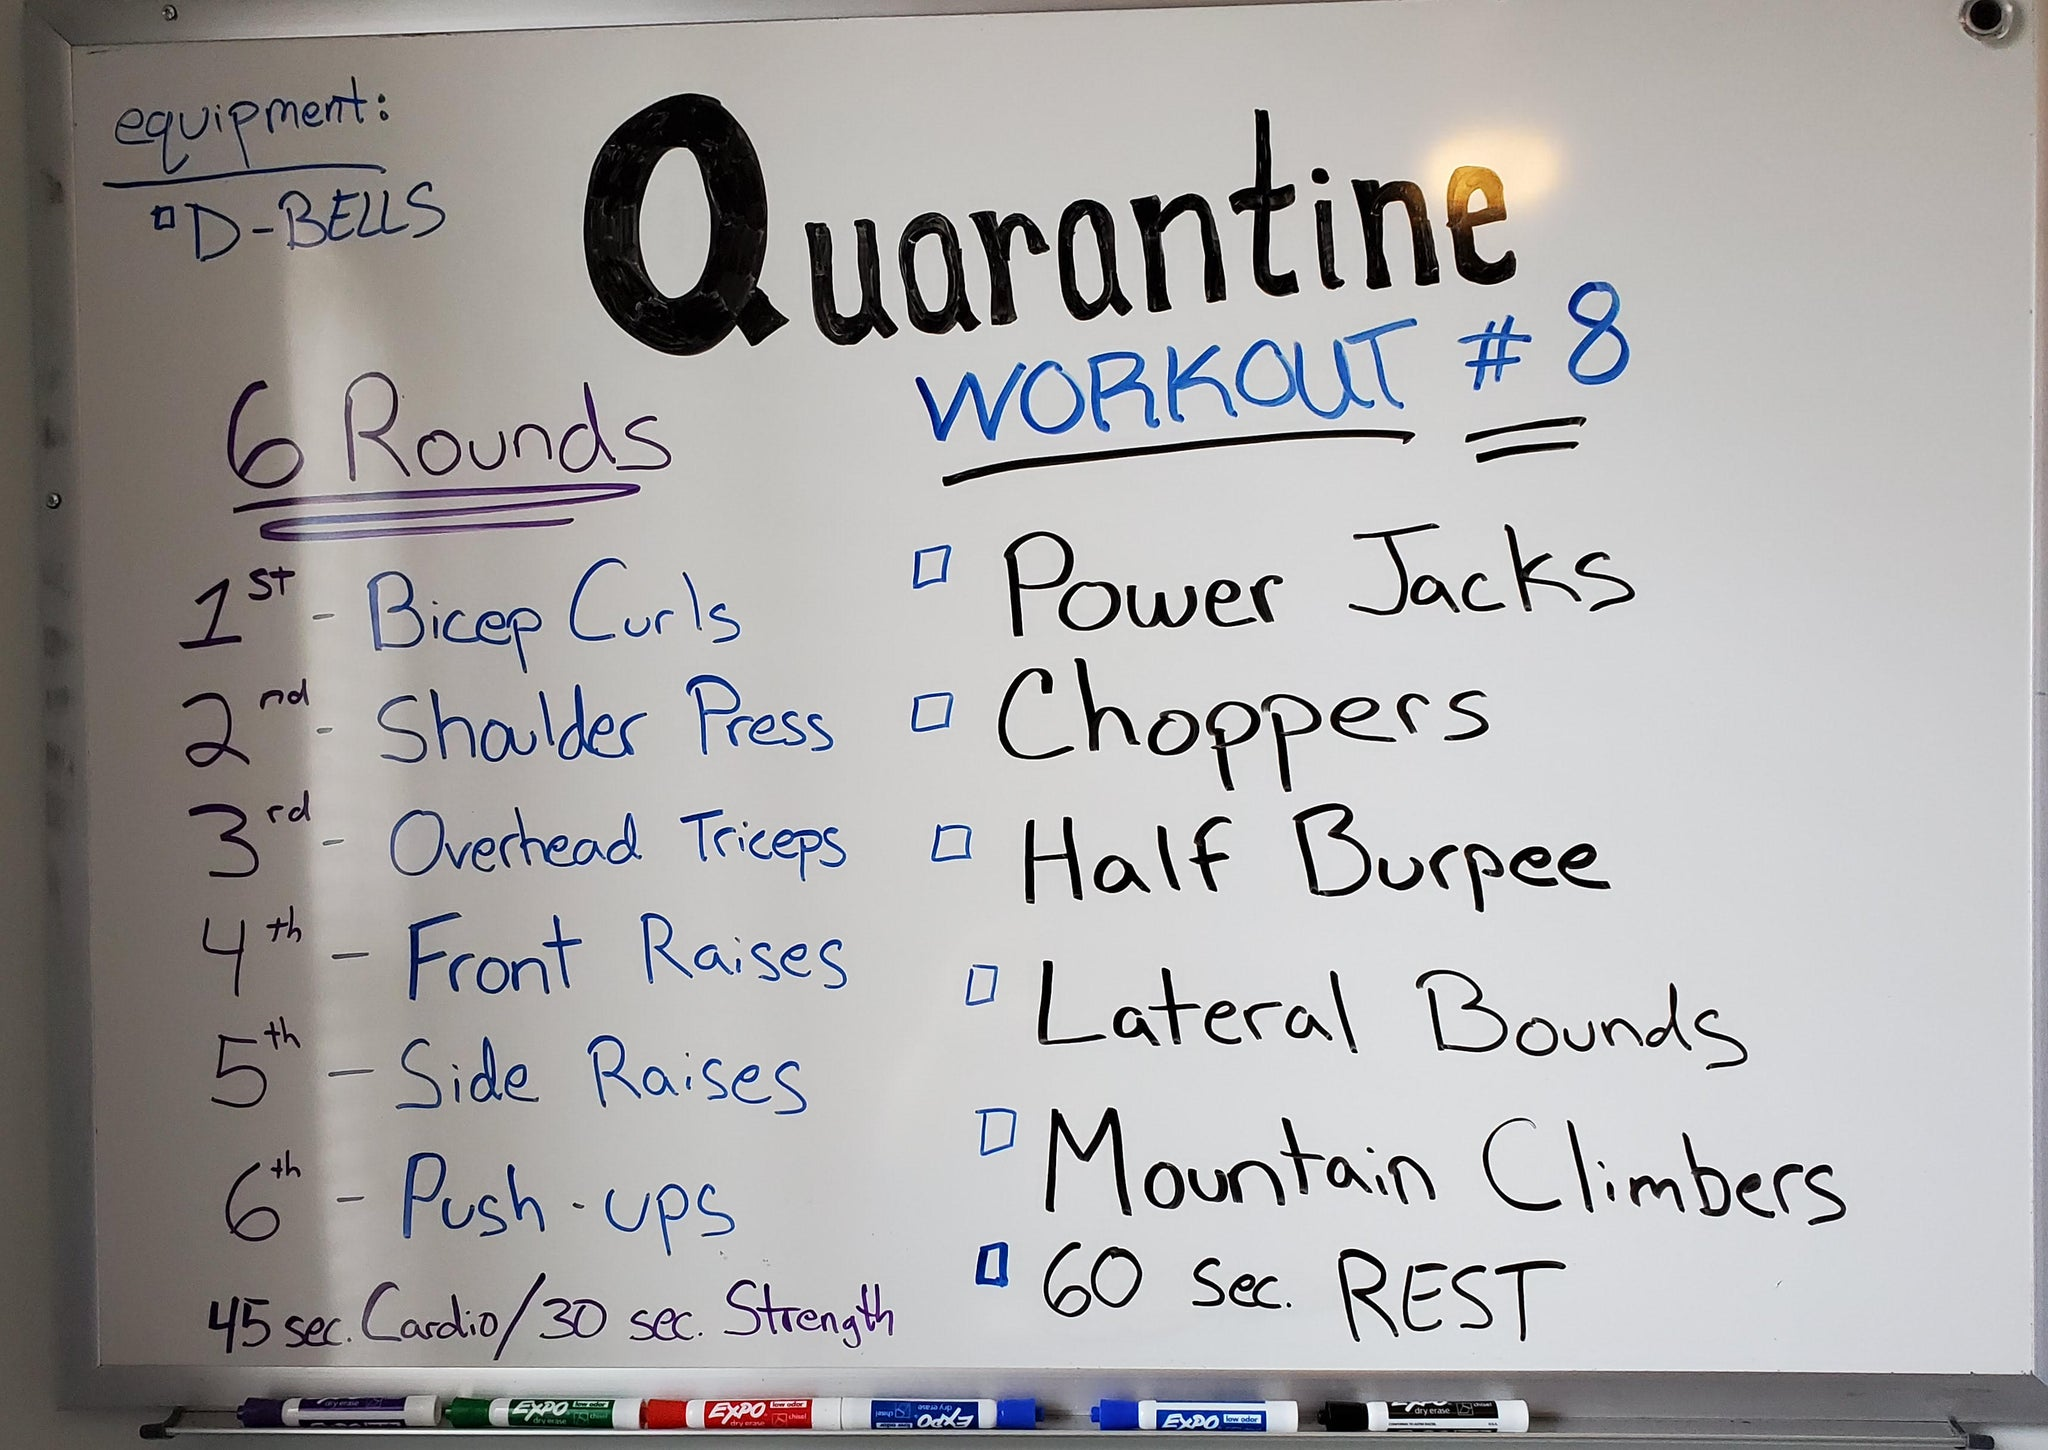 Quarantine fit #8 for Wednesday and Thursday April 8th & 9th